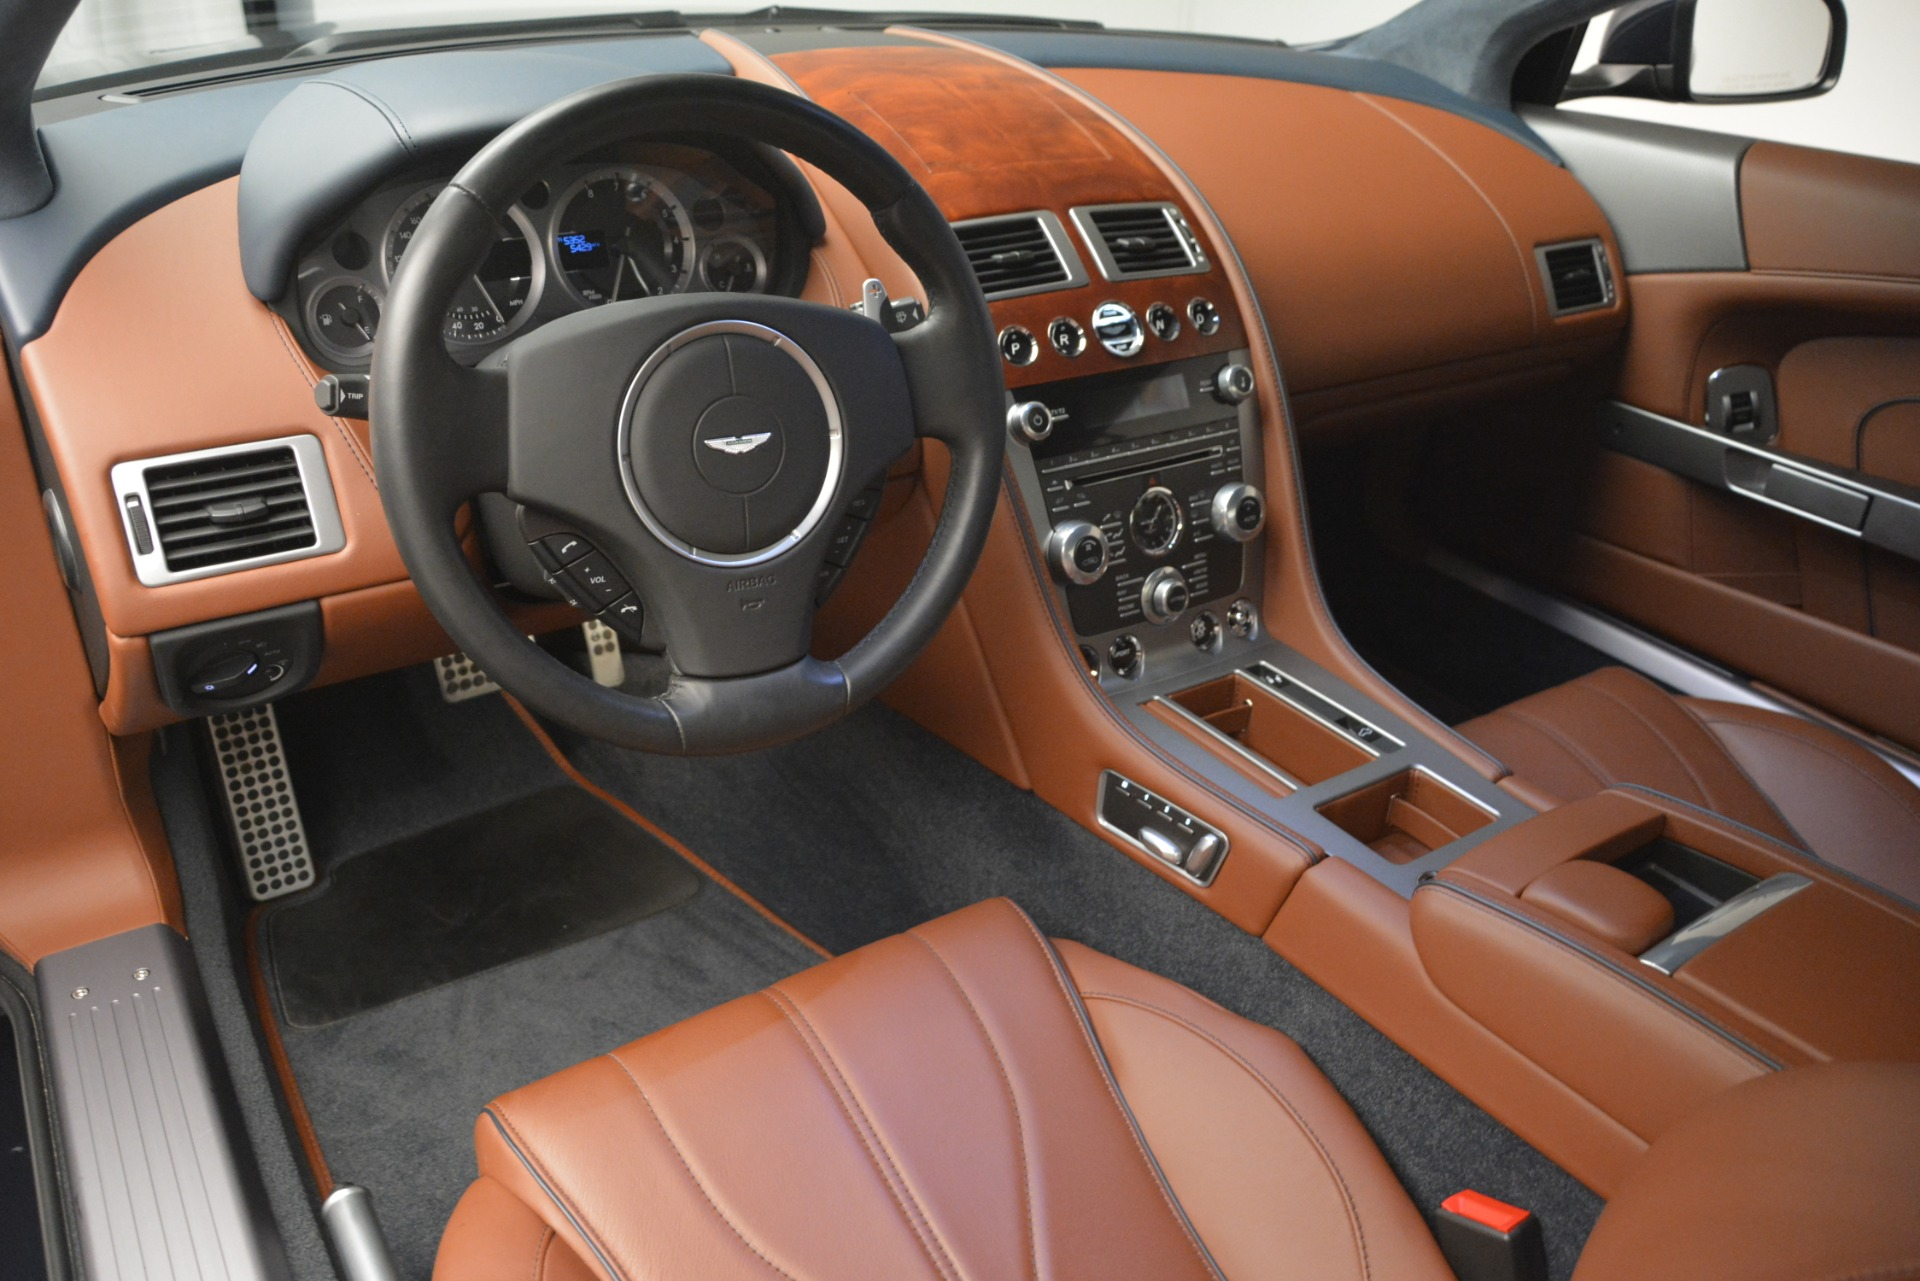 Used 2014 Aston Martin DB9 Coupe For Sale In Westport, CT 3010_p14